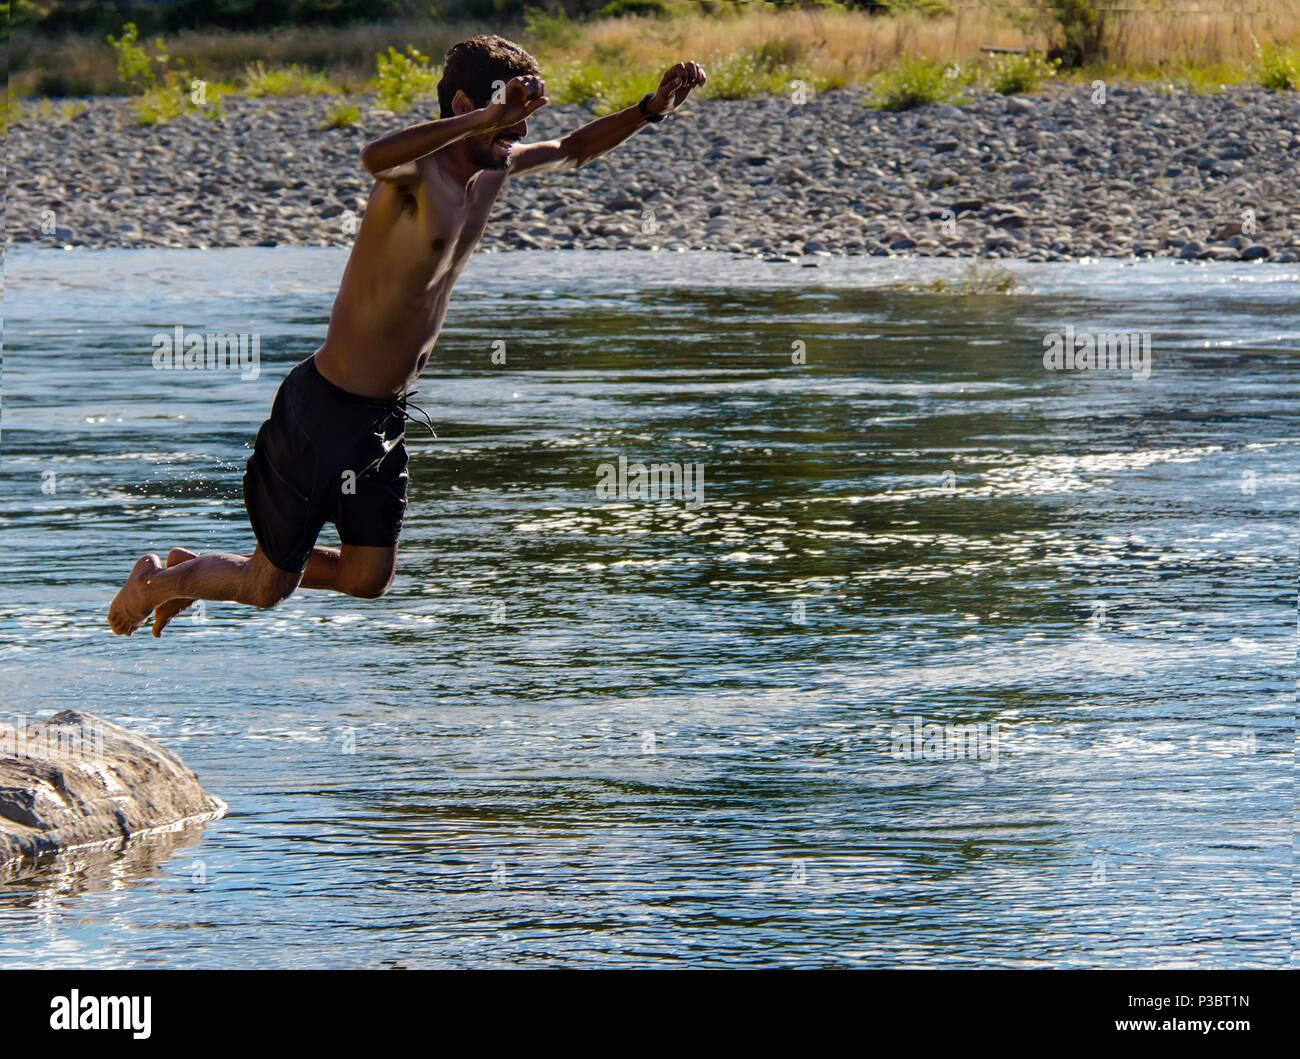 Indian man jumps into the Motueka river in New Zealand - Stock Image